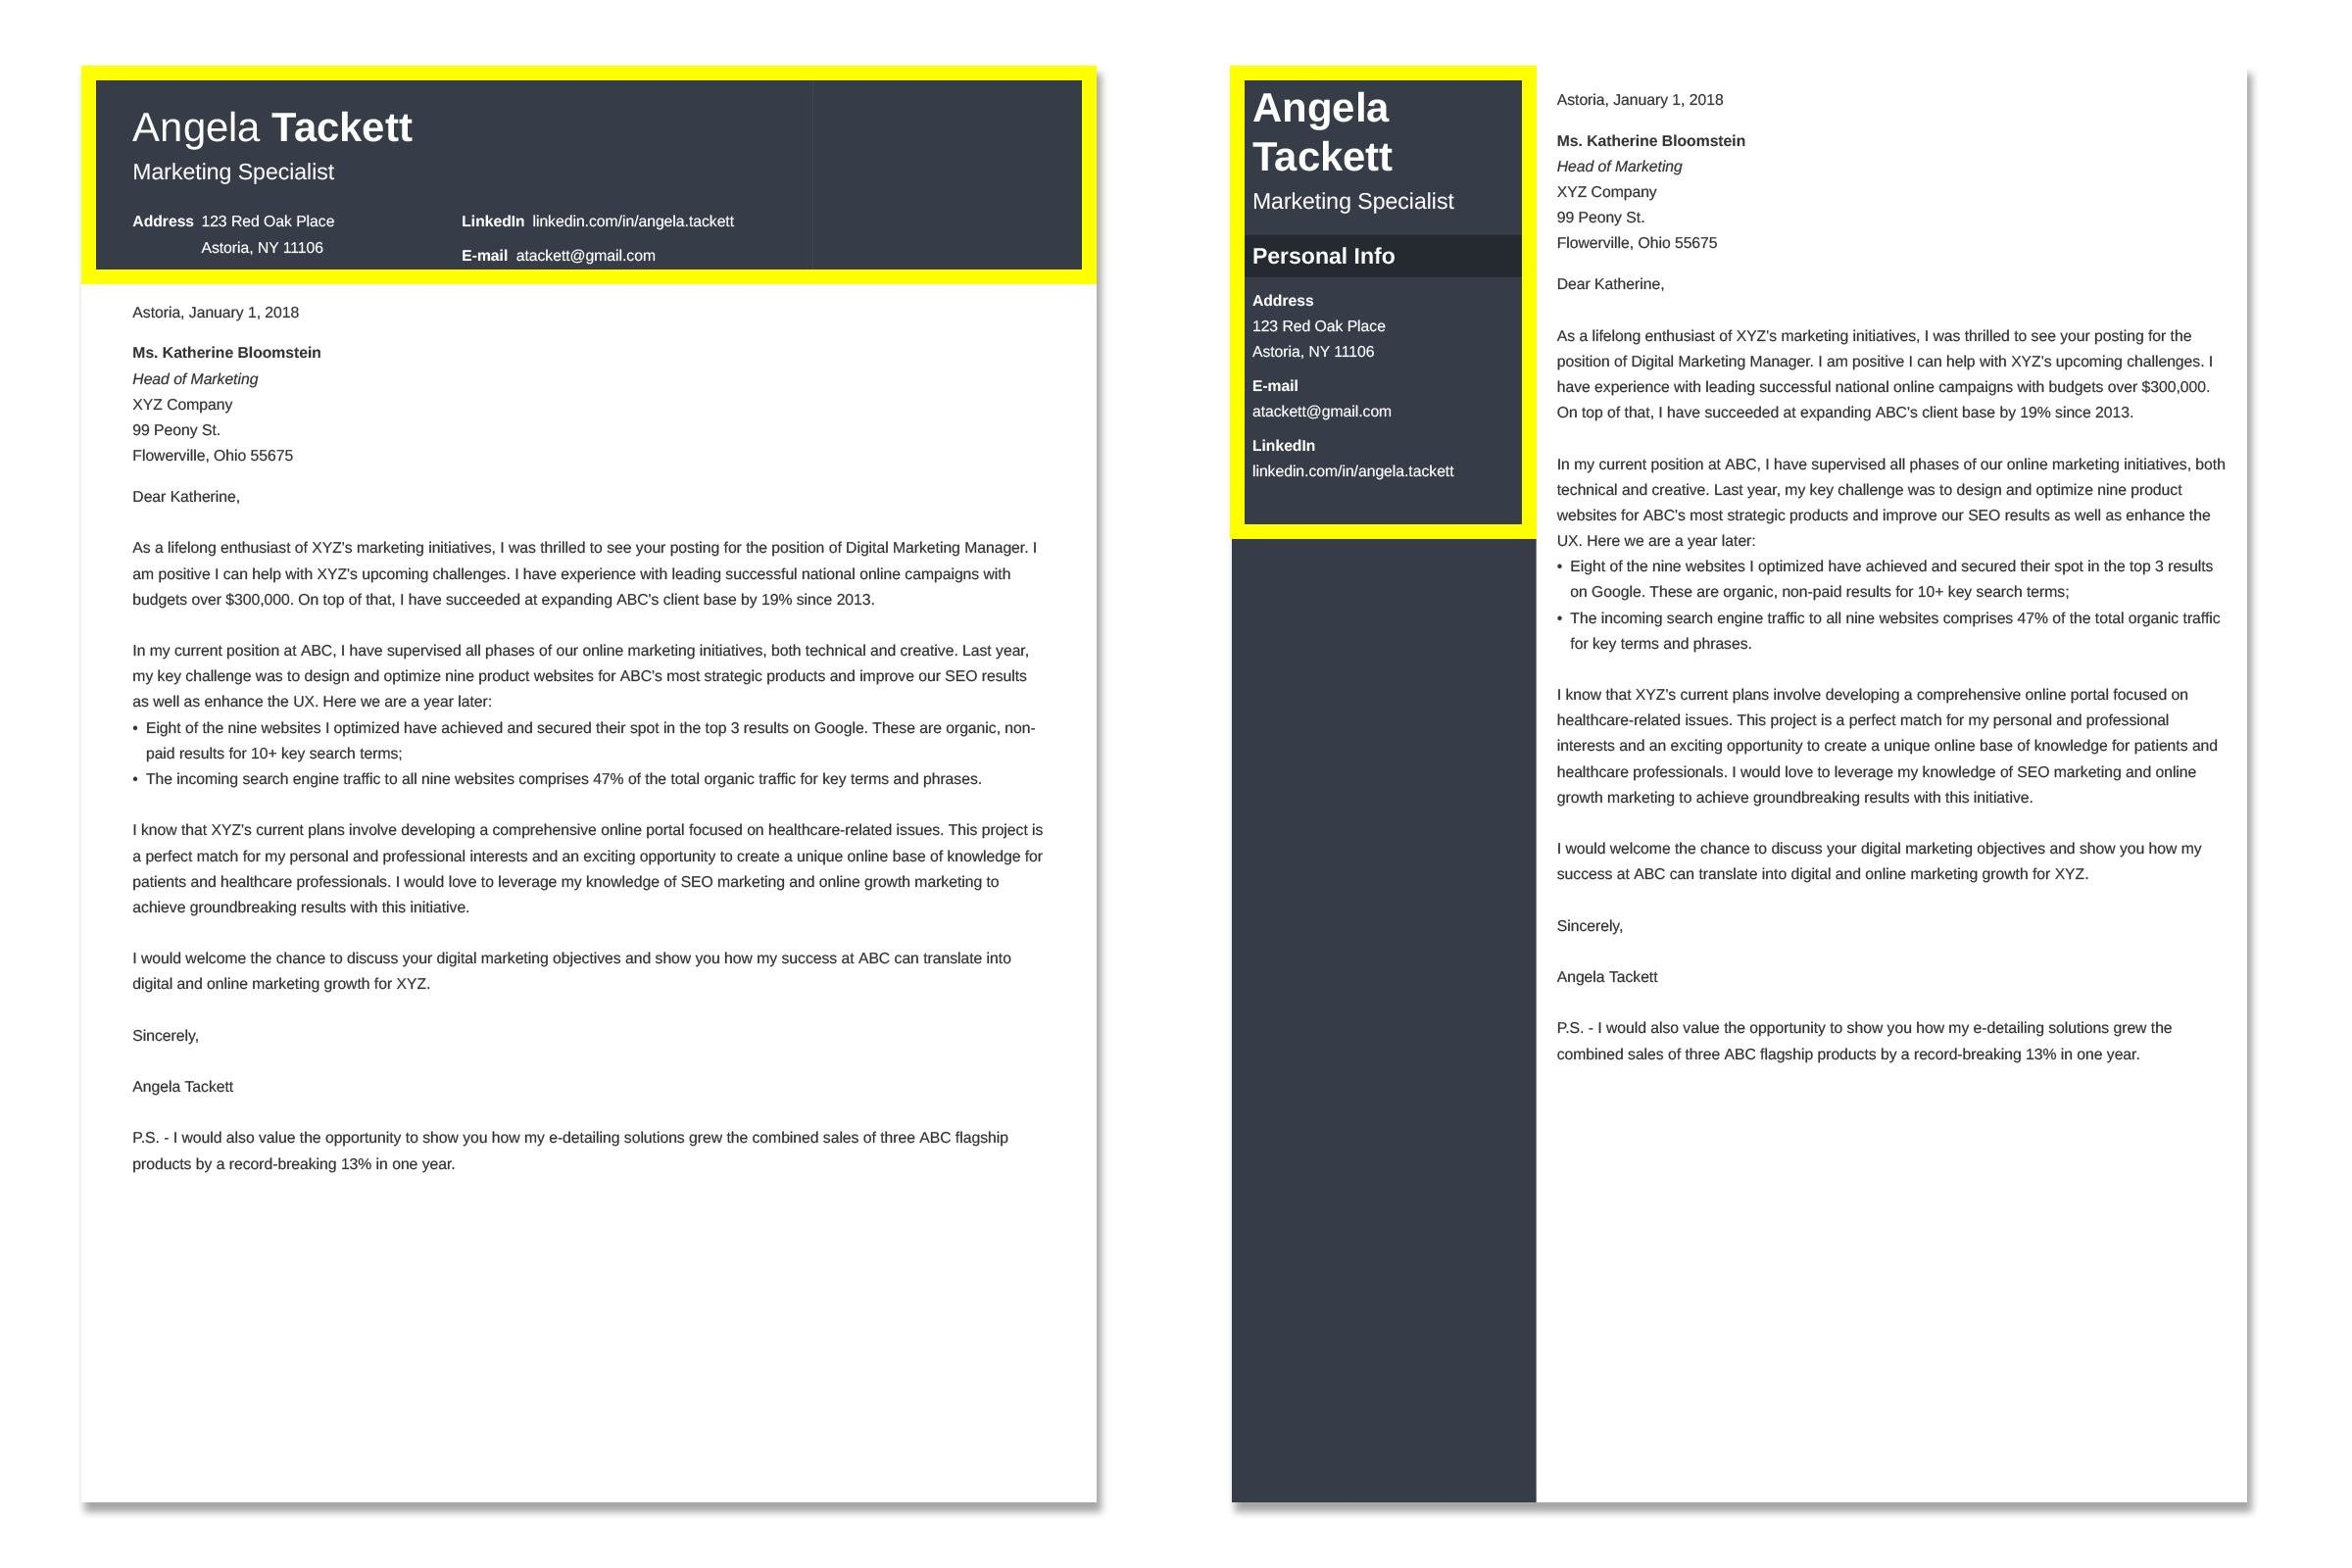 Administrative Assistant Cover Letter Sample & Guide [20 Examples]